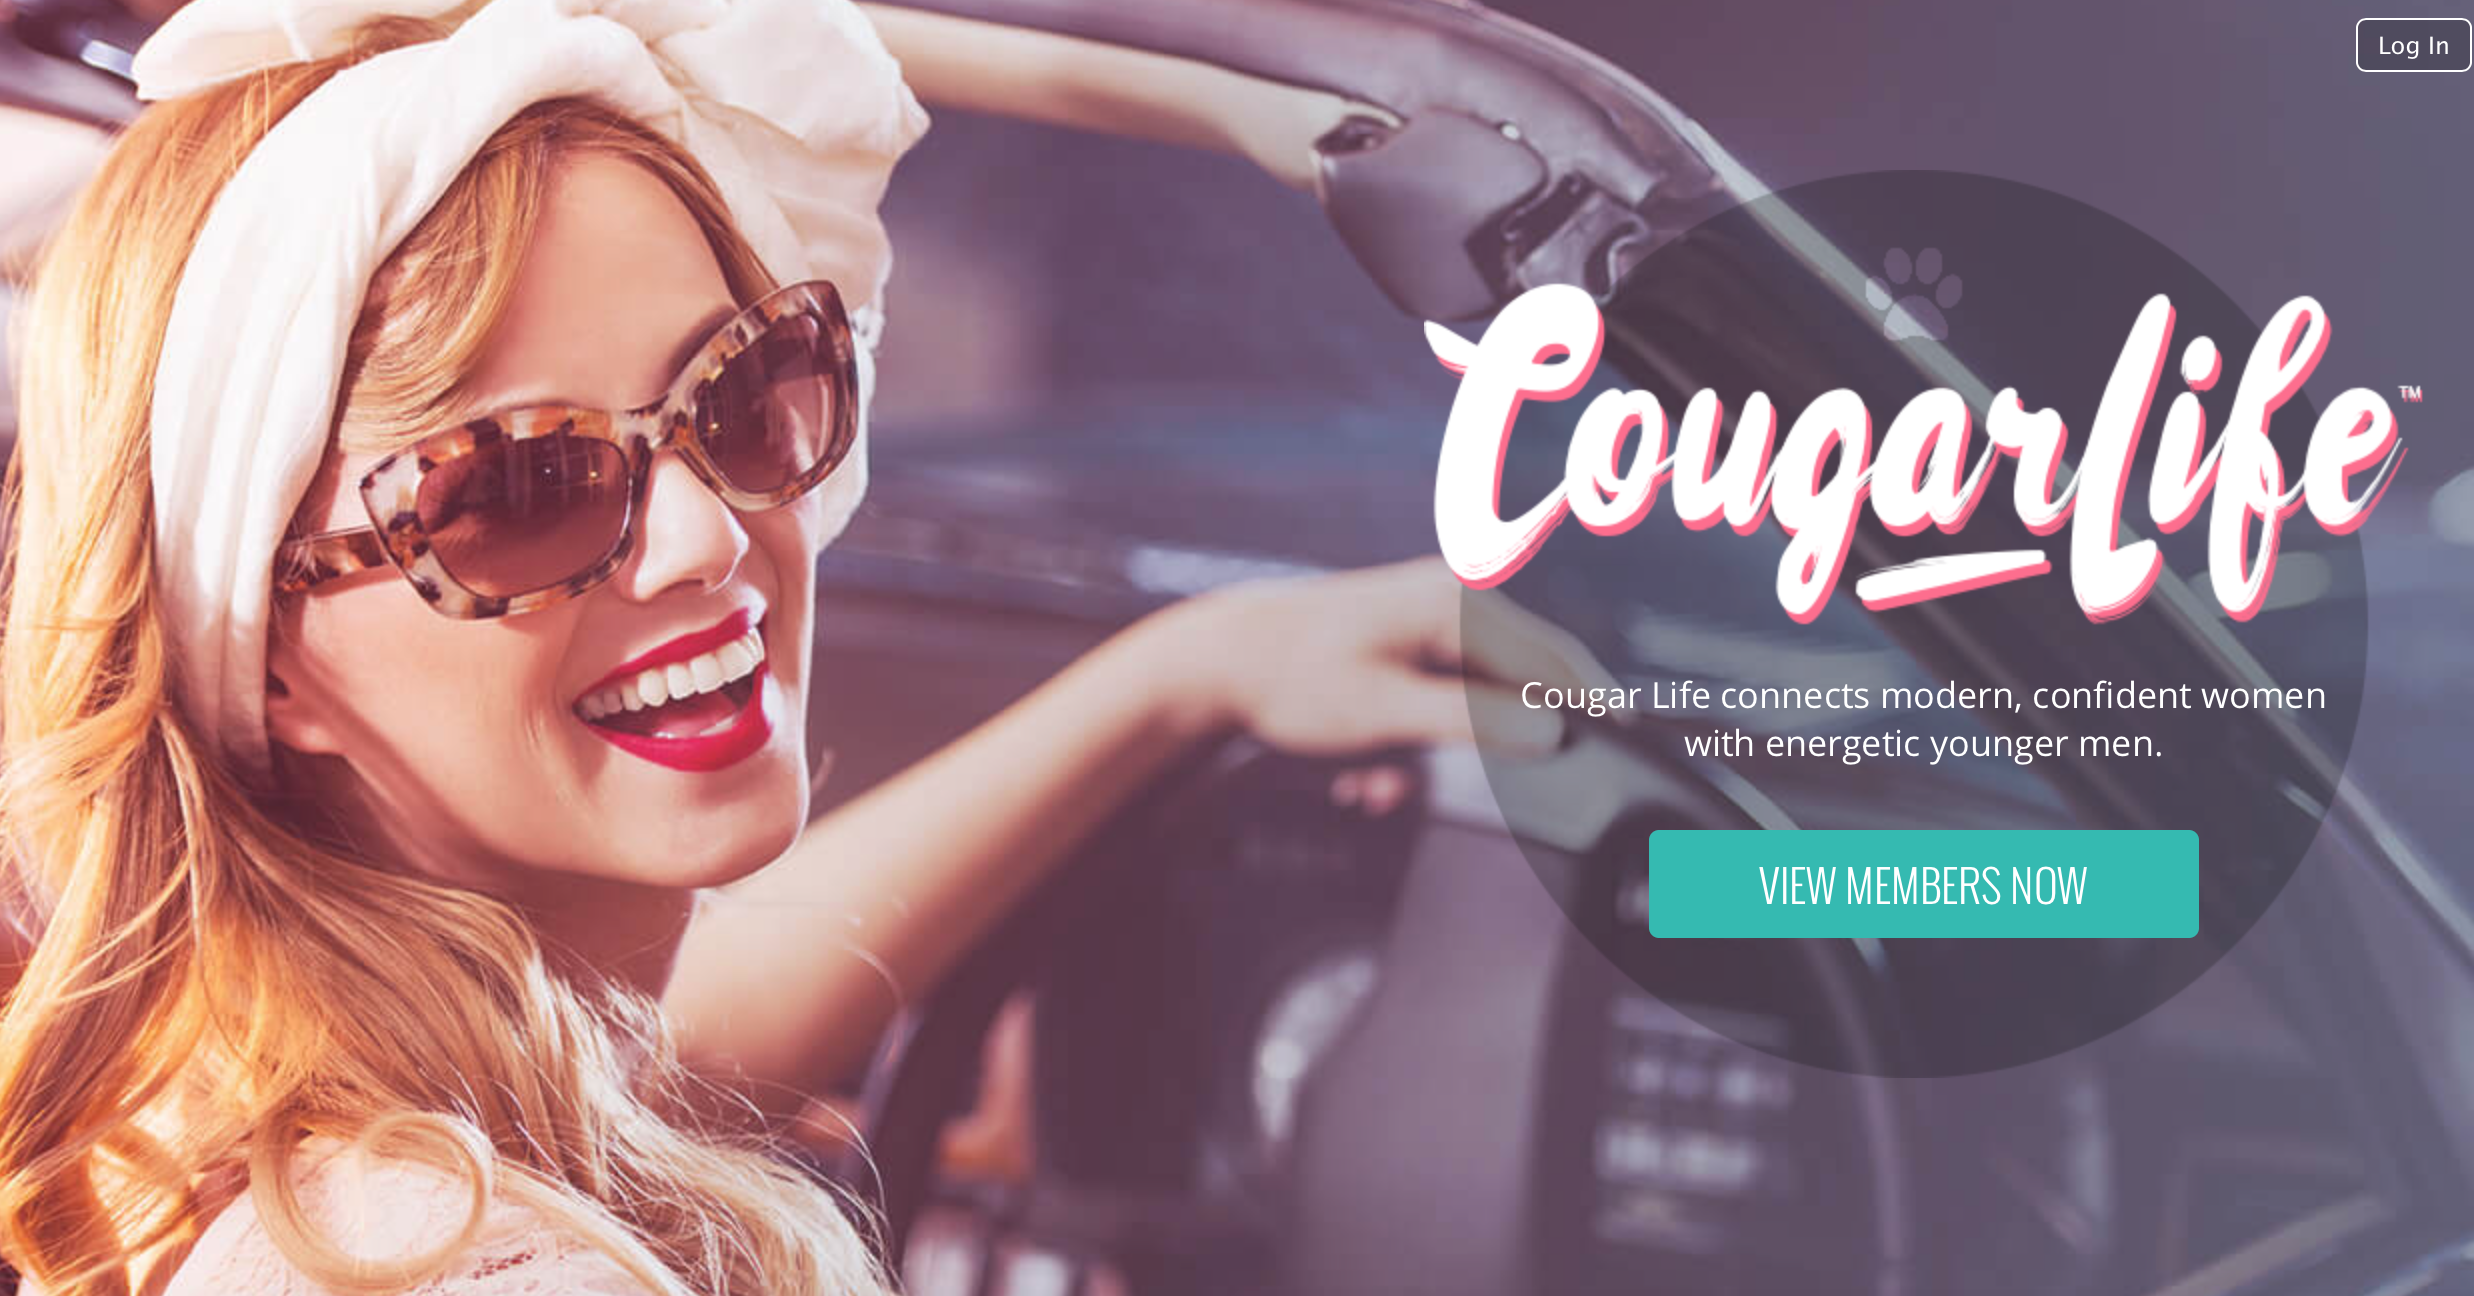 south whitley cougars personals Meet thousands of beautiful single girls online seeking guys for dating, love, marriage in indiana.